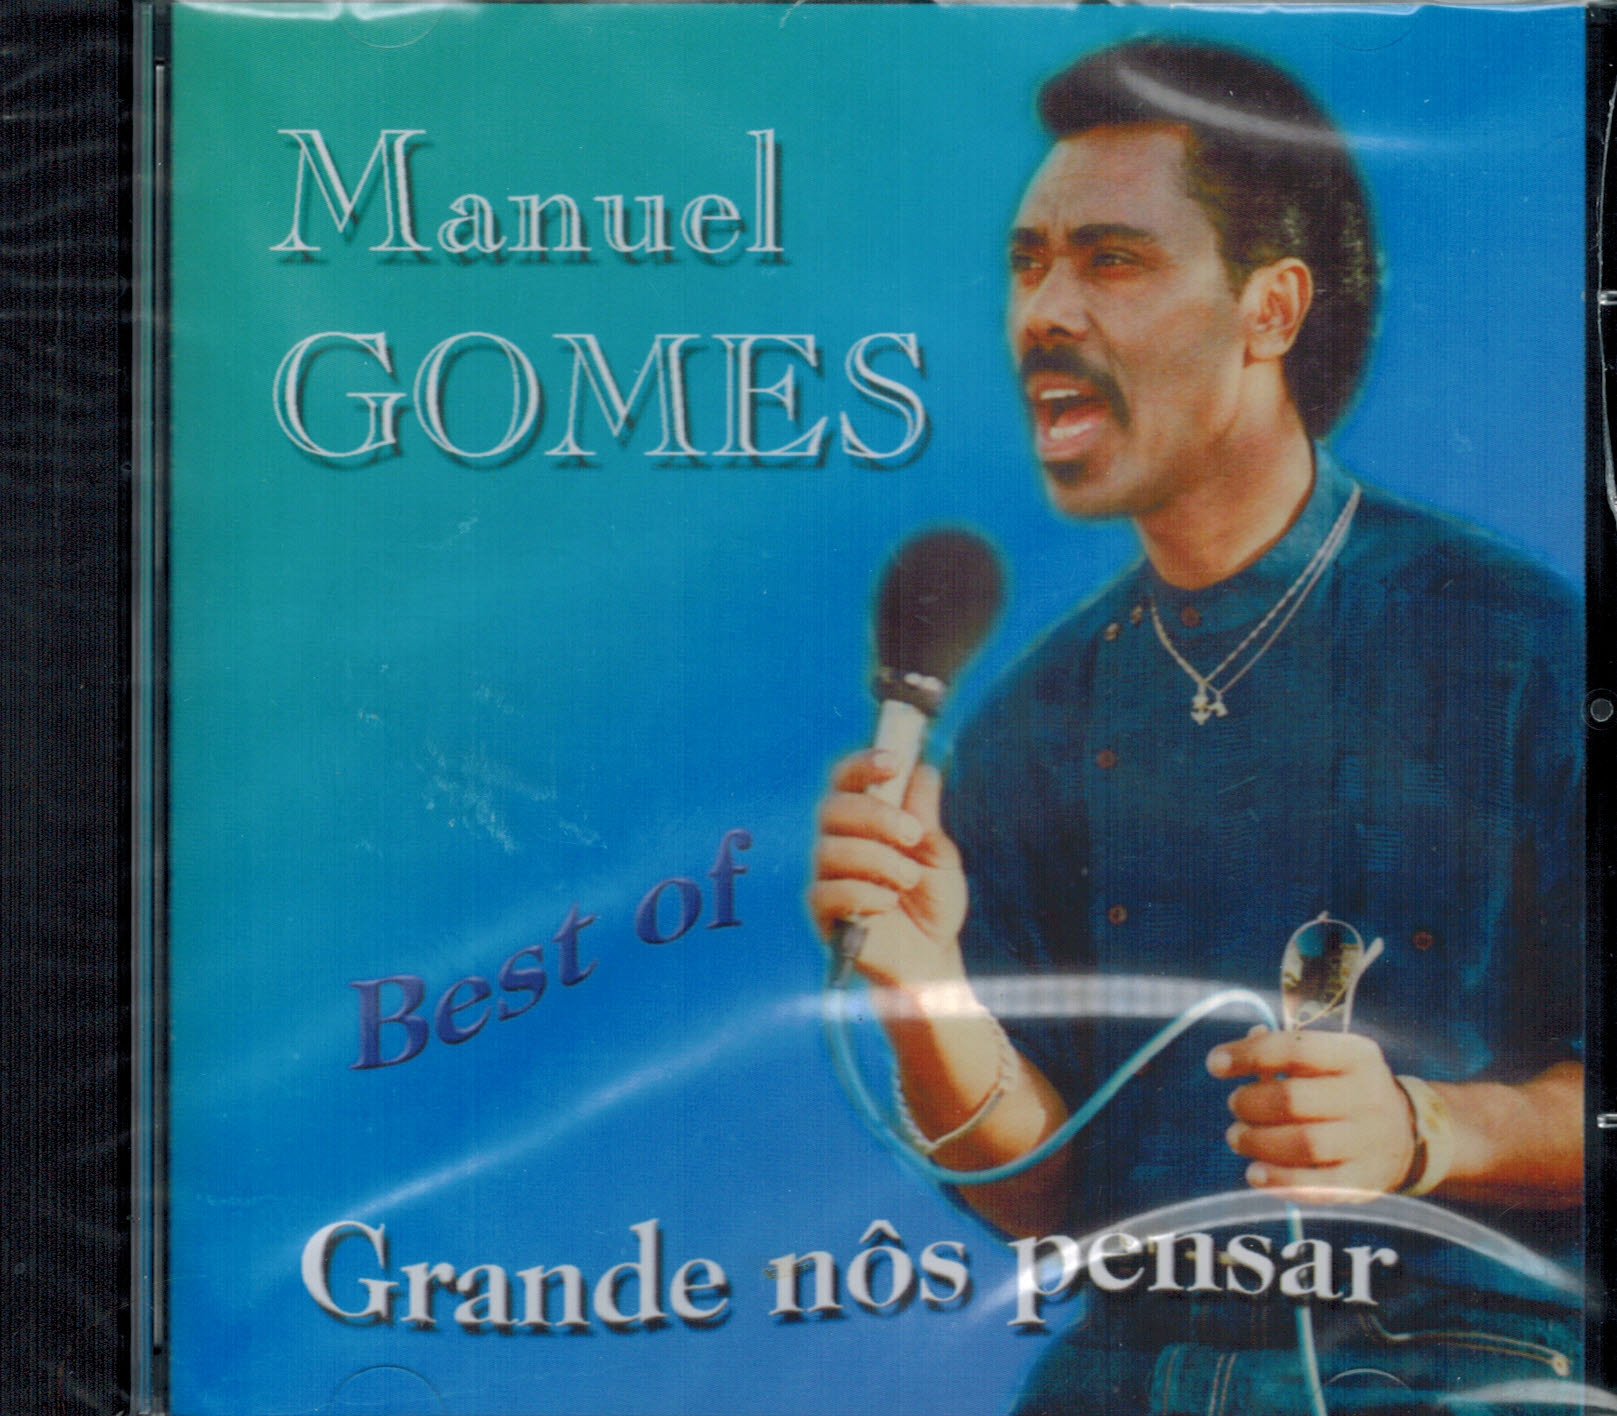 Mannuel Gomes